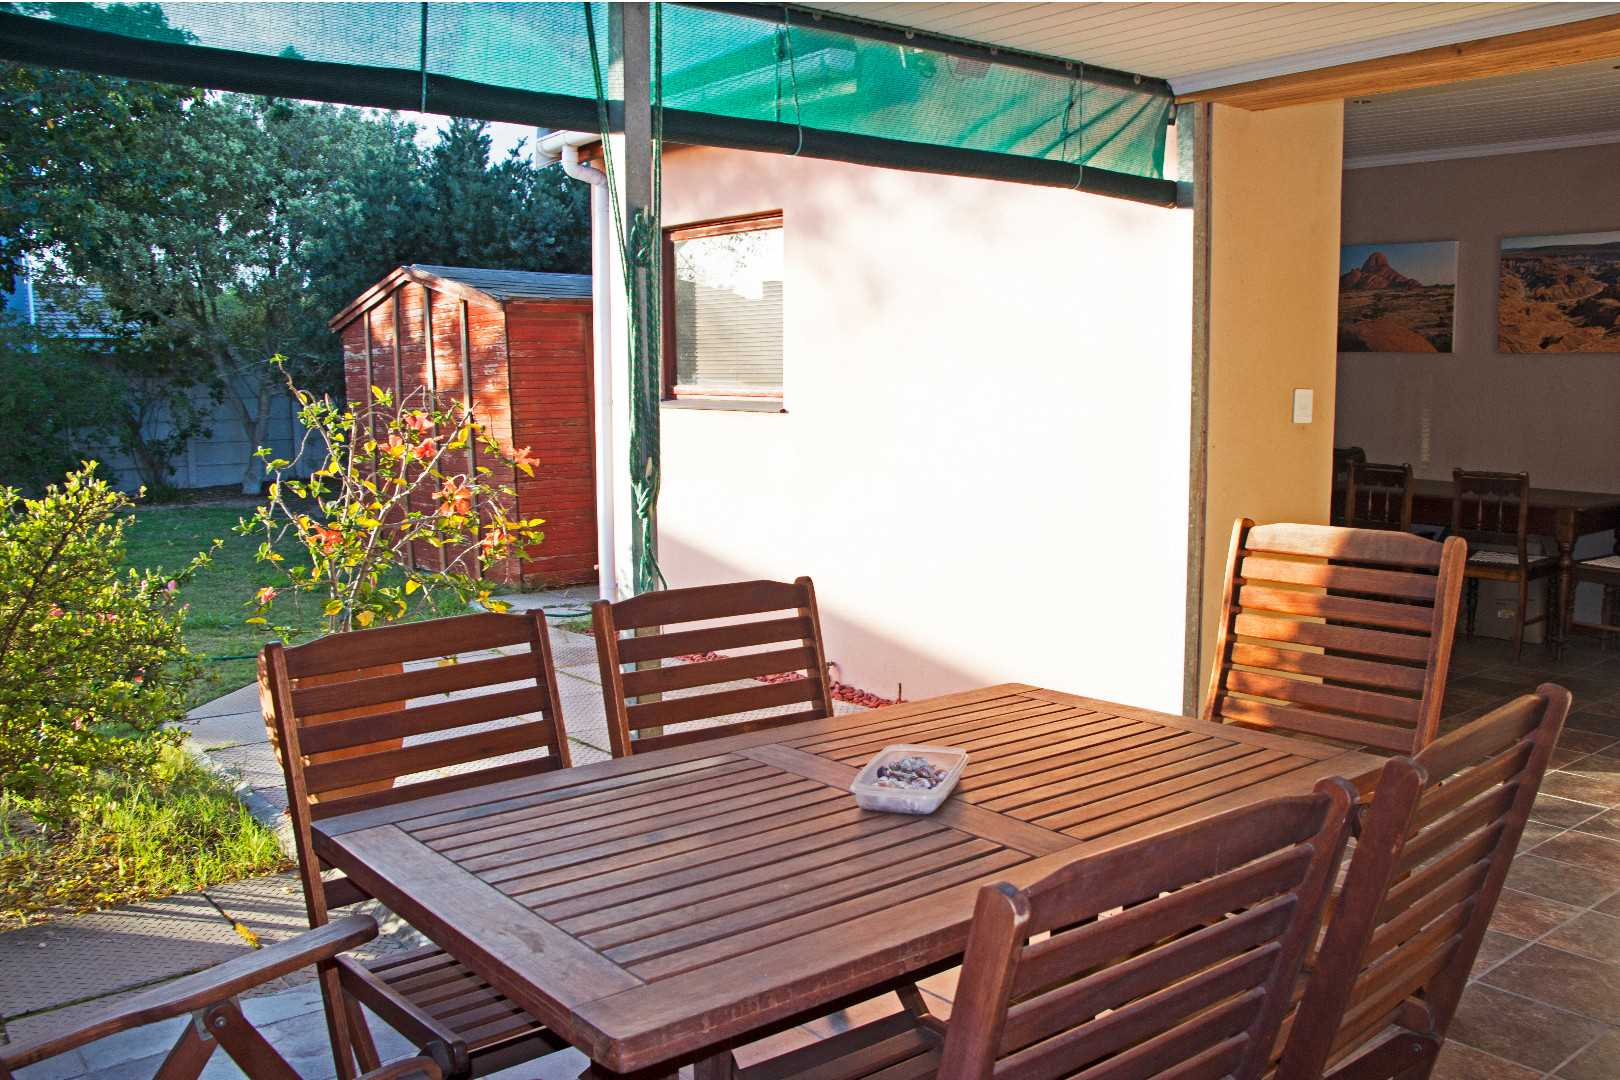 3 bed 2 bath Table View - Comfortable Move in READY home